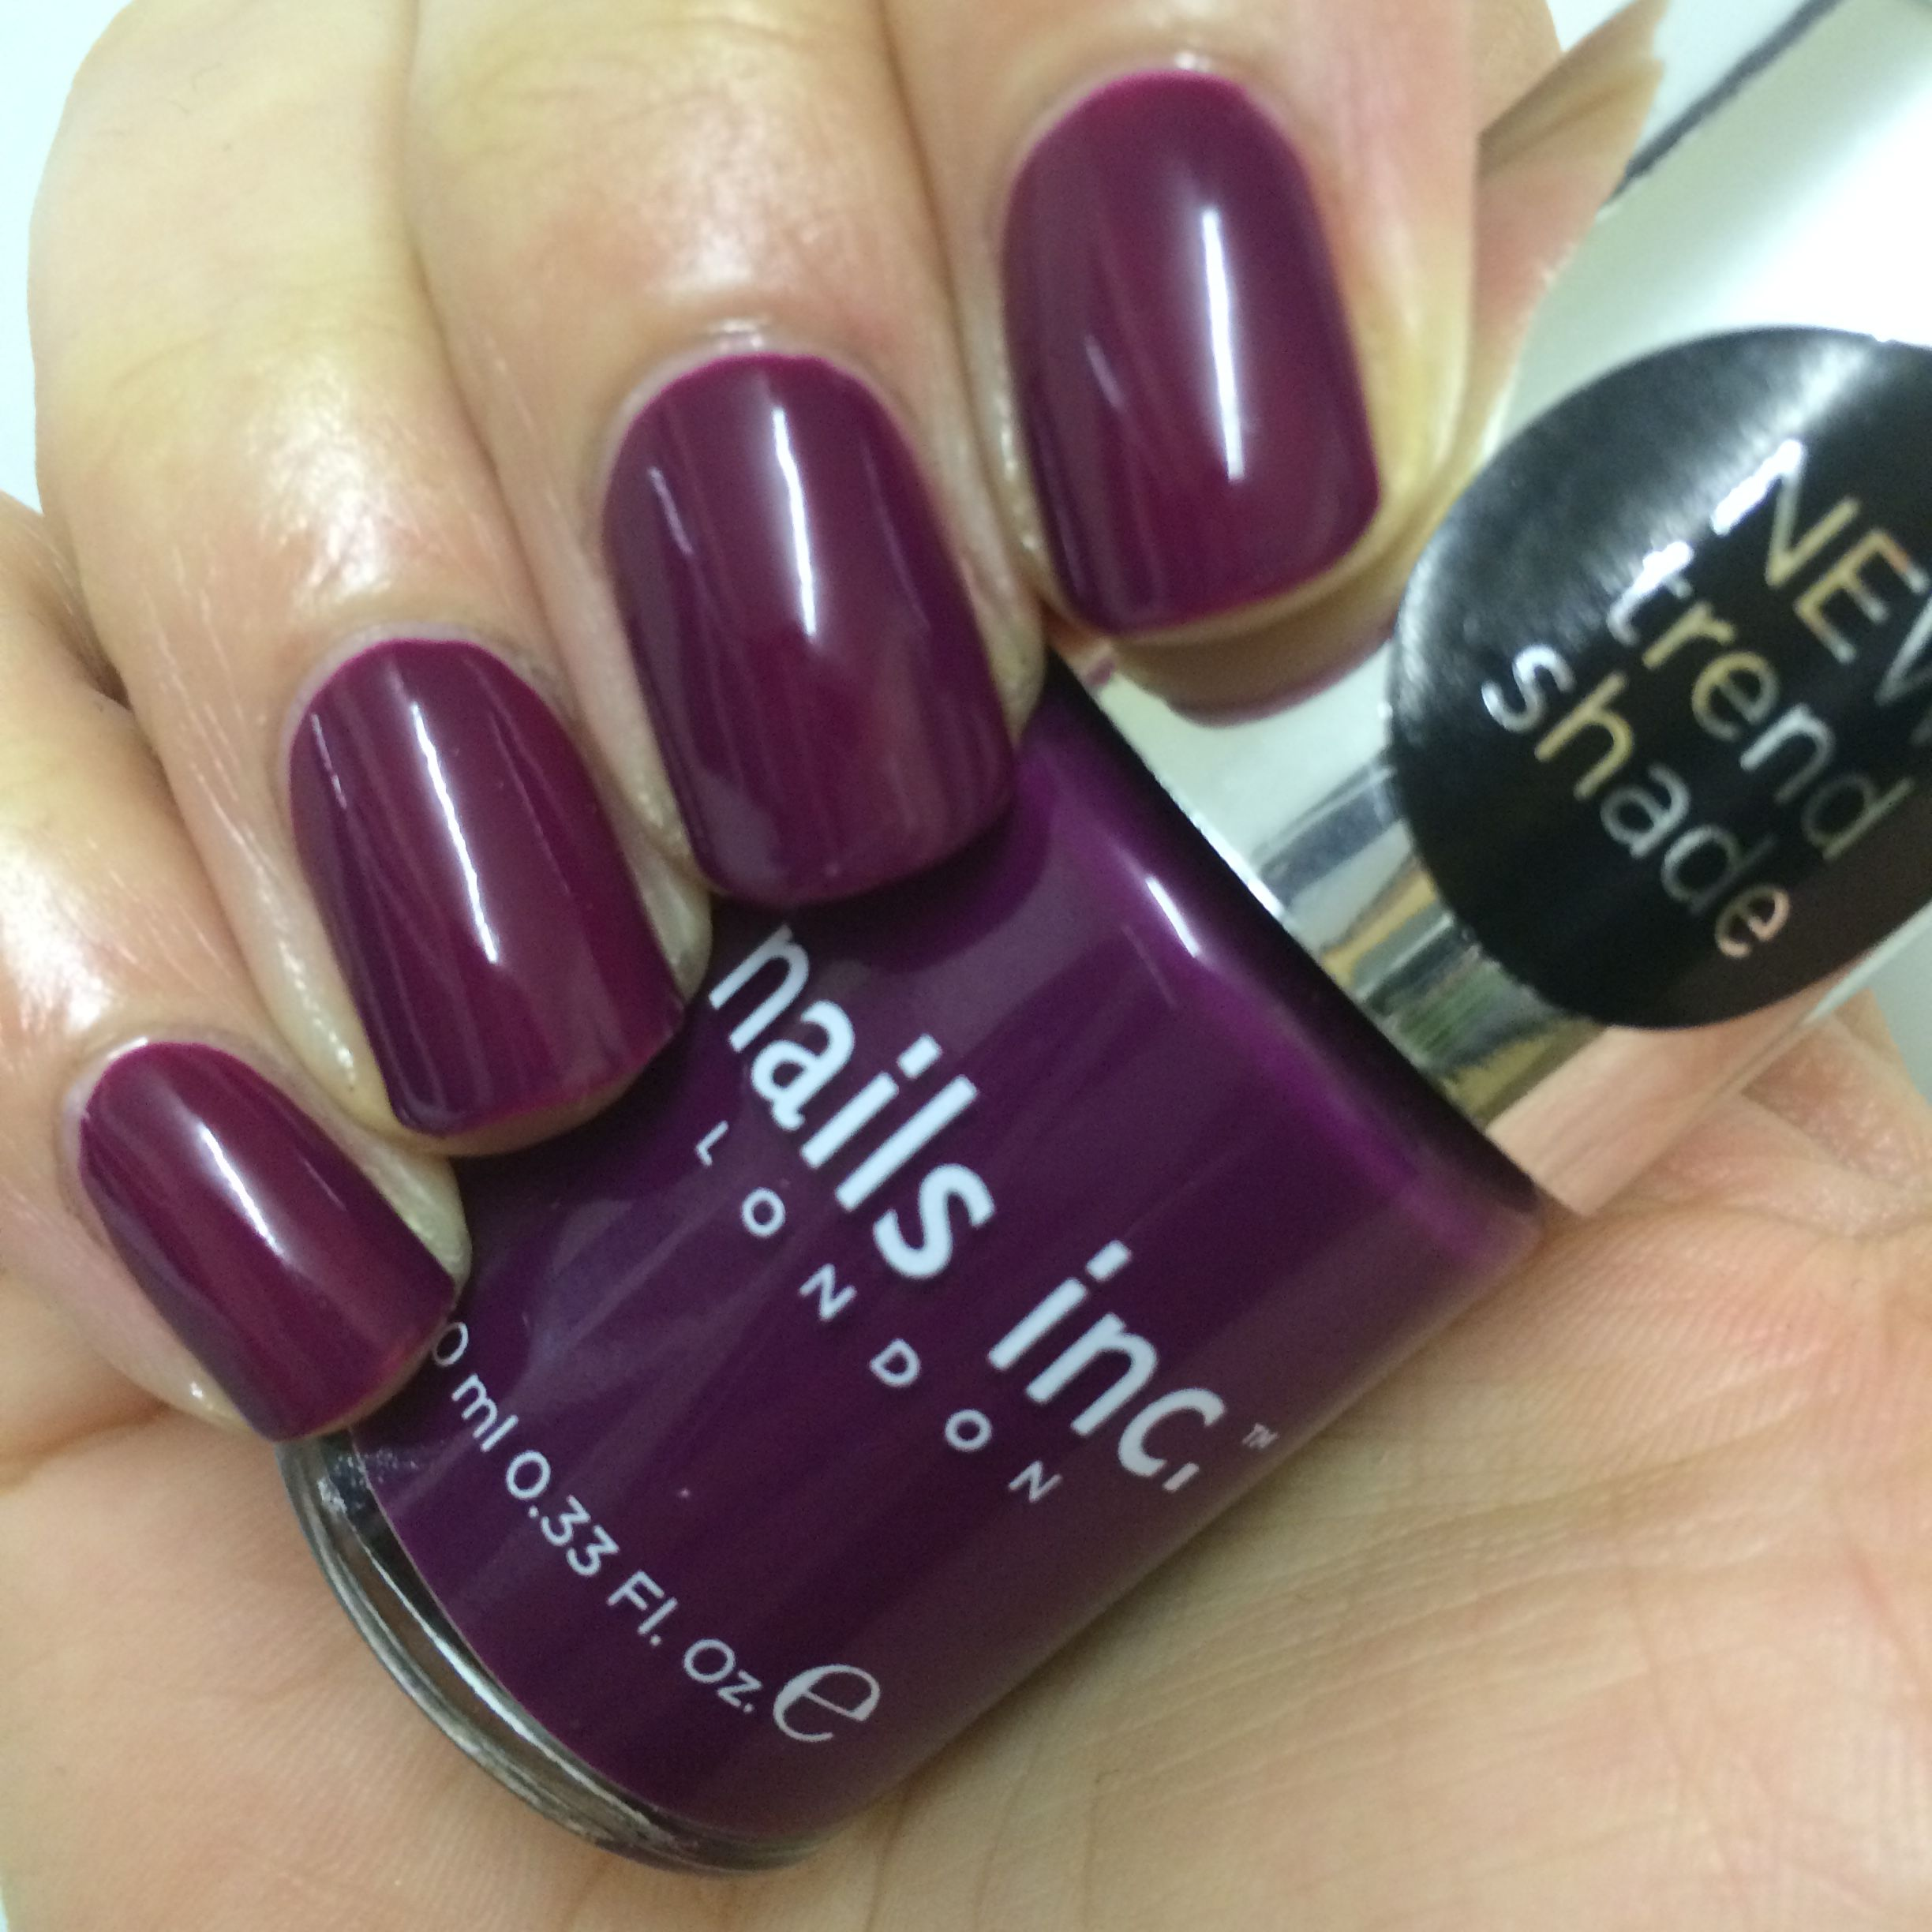 Nails inc gel nail colors and gel nail polish on pinterest - Manicure Mails Inc St Martin S Lane